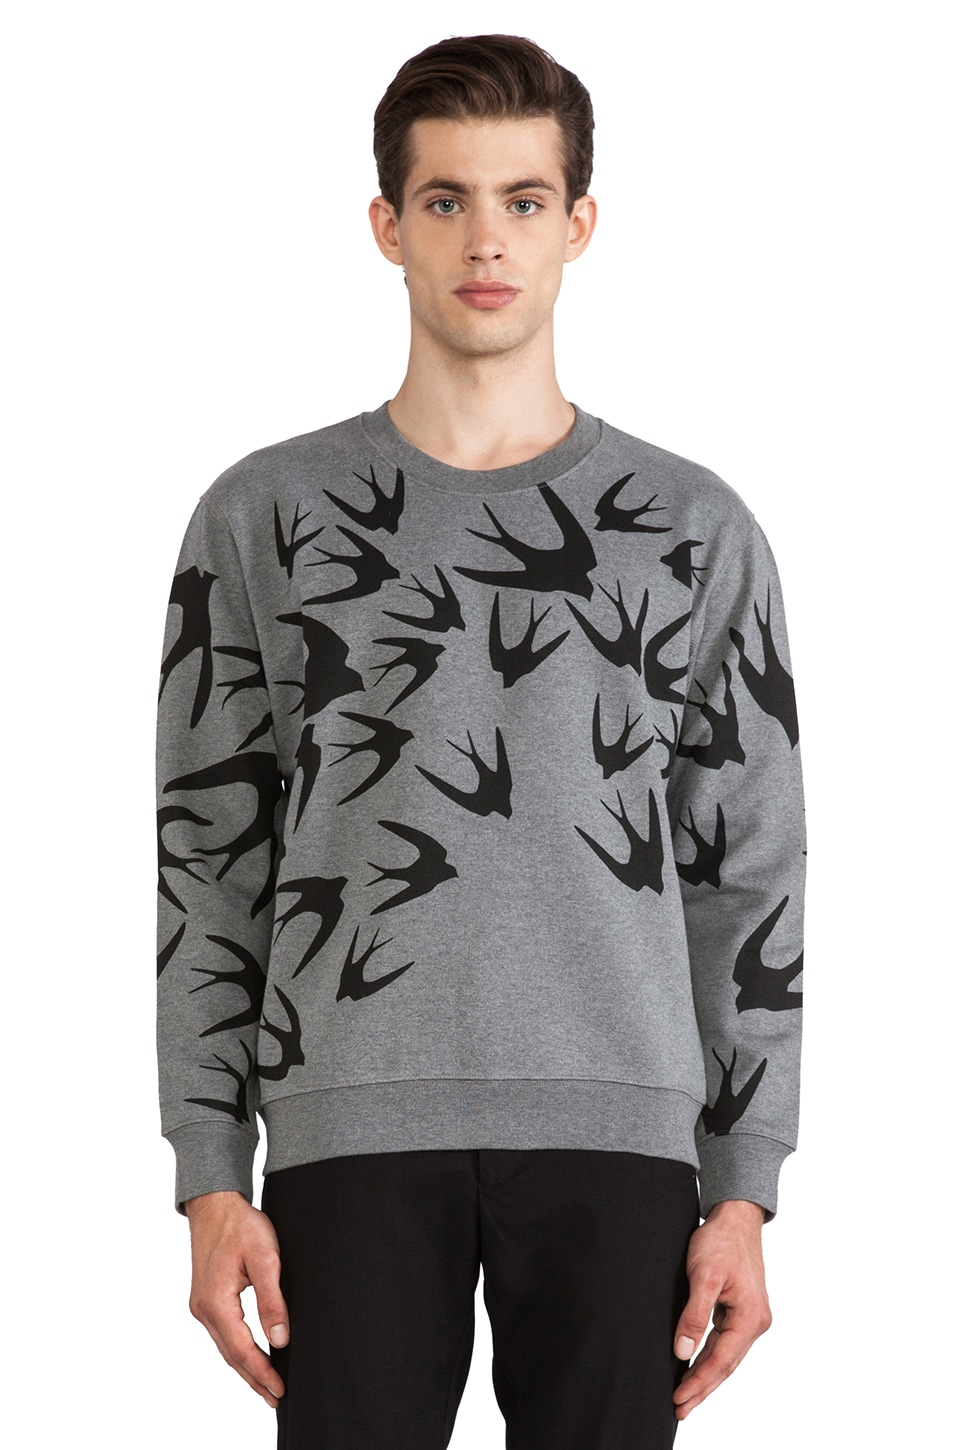 McQ Alexander McQueen McQ Crew Neck in Grey Black Flock Swallow